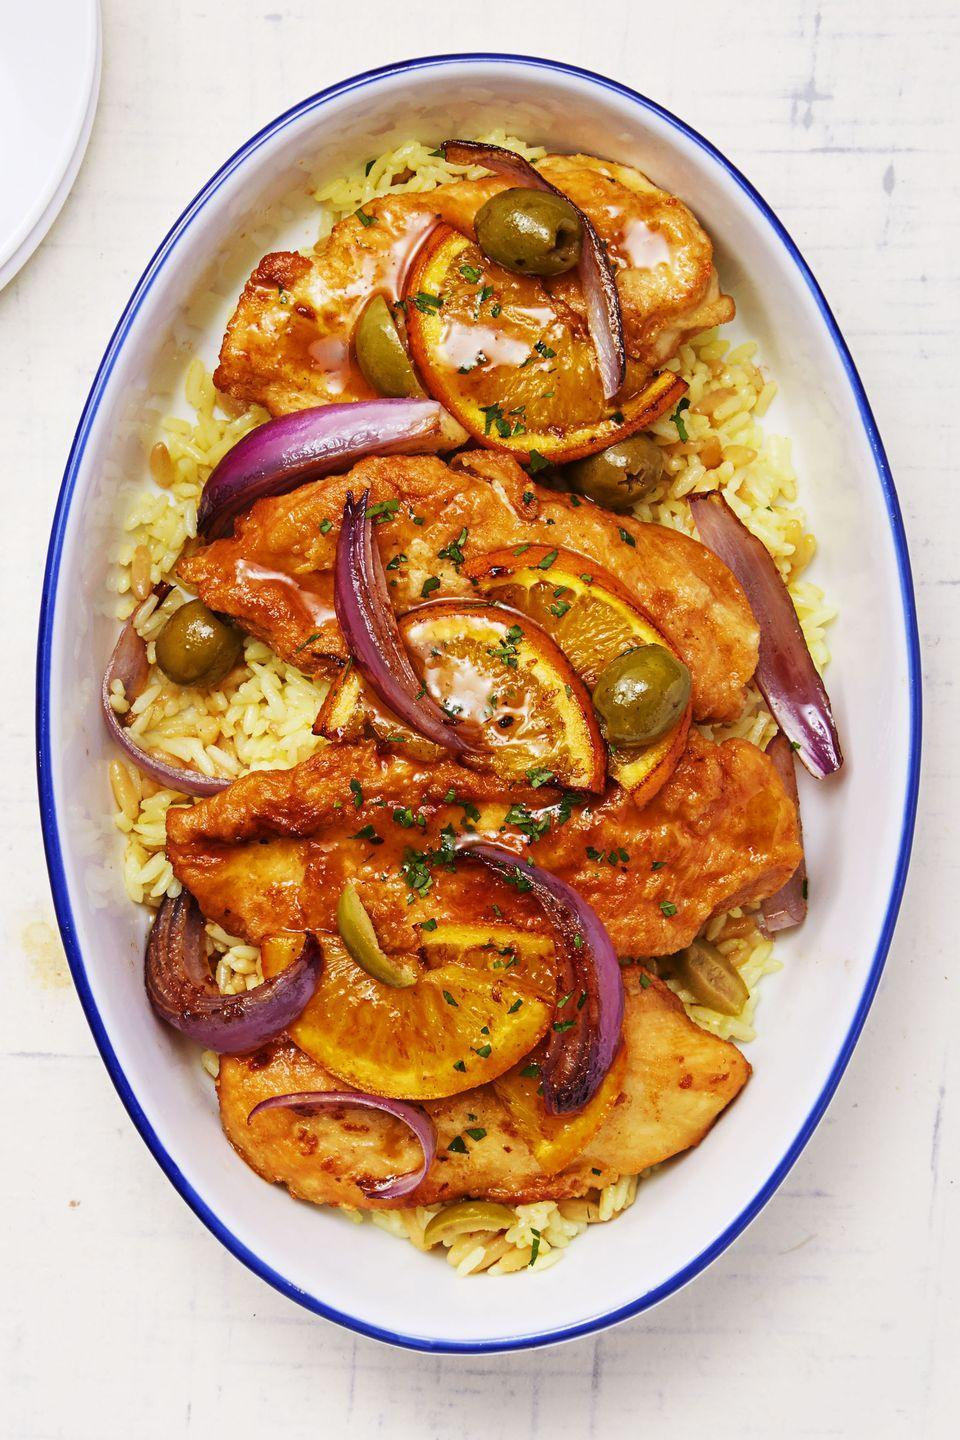 "<p>Boring ol' chicken? No more. Cook the cutlets with navel oranges, red onions and olives for an update your guests will adore. </p><p><em><a href=""https://www.goodhousekeeping.com/food-recipes/a32683/moroccan-olive-and-orange-chicken/"" rel=""nofollow noopener"" target=""_blank"" data-ylk=""slk:Get the recipe for Moroccan Olive and Orange Chicken »"" class=""link rapid-noclick-resp"">Get the recipe for Moroccan Olive and Orange Chicken »</a></em> </p>"